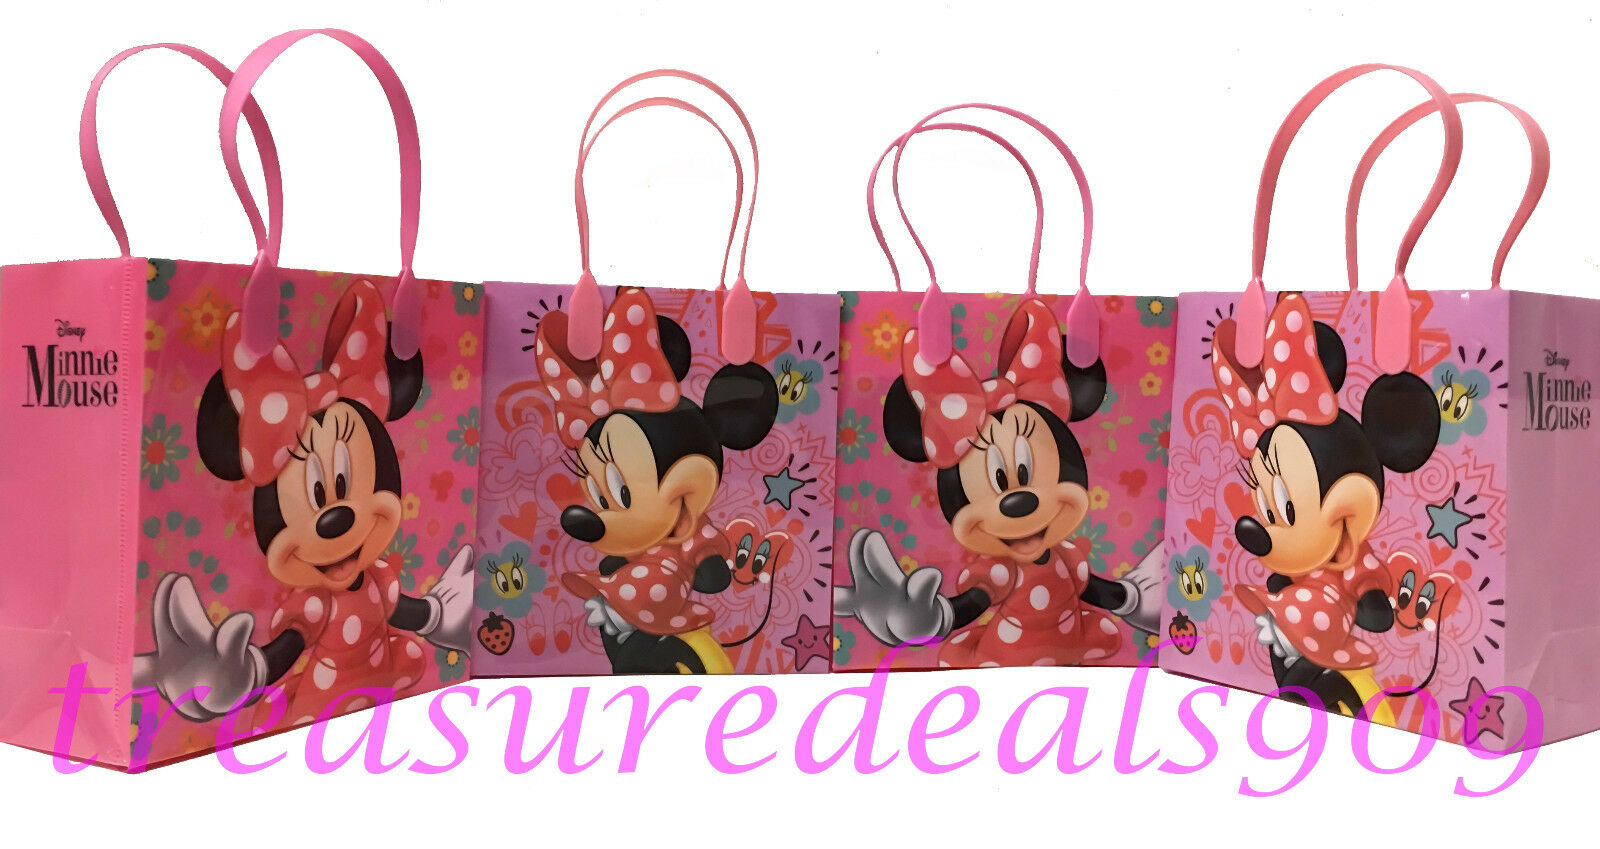 Details About 48 PC DISNEY MINNIE MOUSE GOODIE GIFT BAGS PARTY FAVORS CANDY TREAT BIRTHDAY BAG